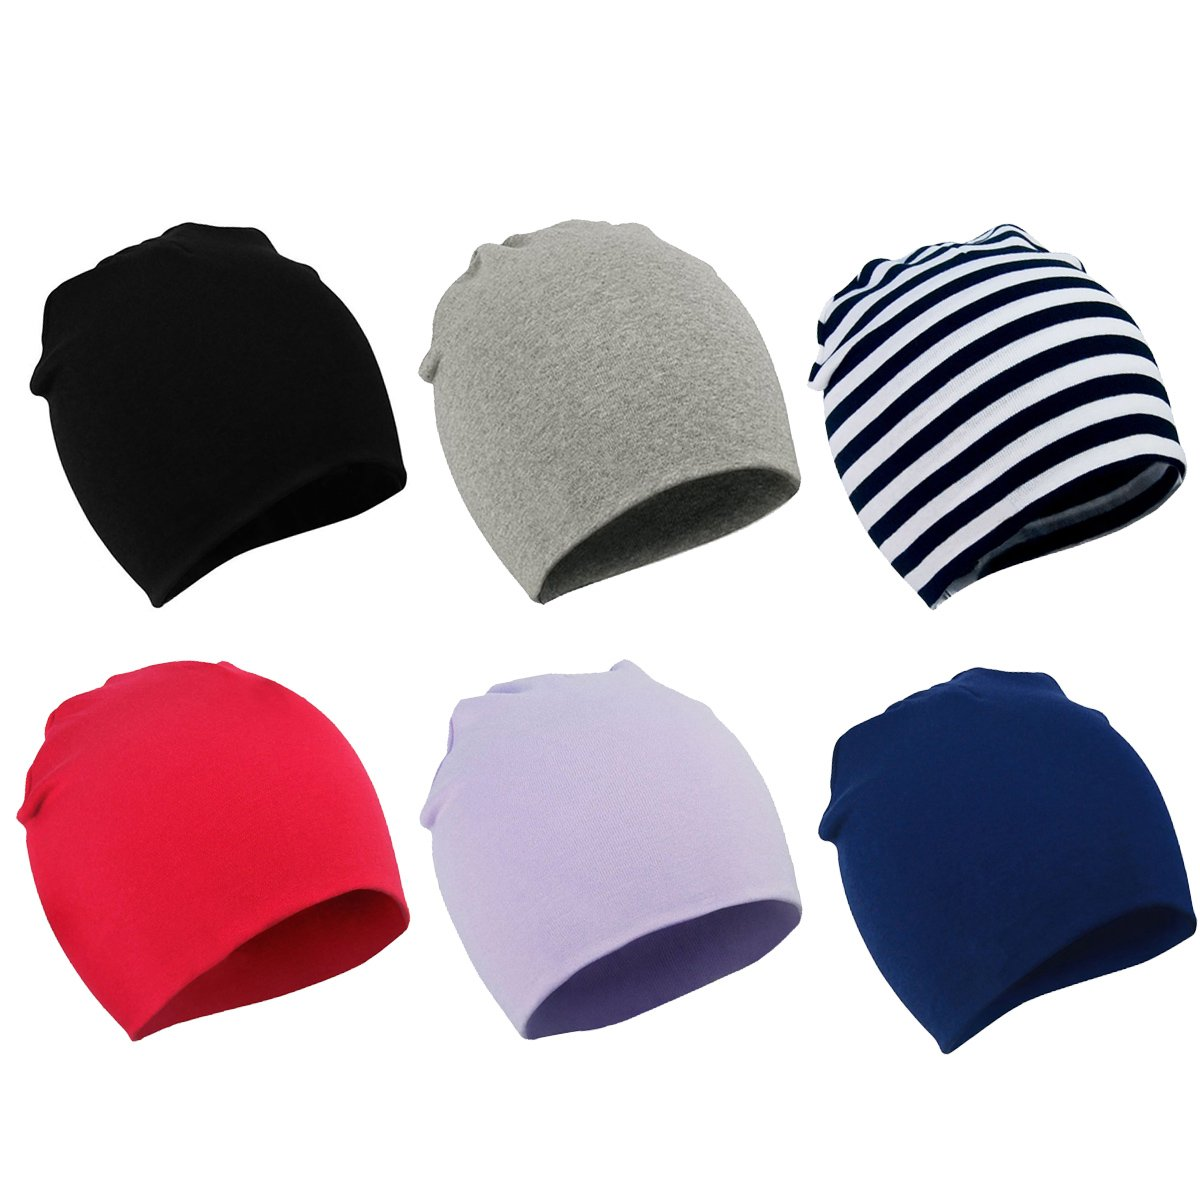 Zando Toddler Baby Beanies Hat for Baby Girls Cotton Knit Beanie Kids Lovely Soft Cute Cap Infant Beanies for Baby Boys 6 Pack Black Light Grey Stripe Red Light Purple Navy Large (1-4 years)